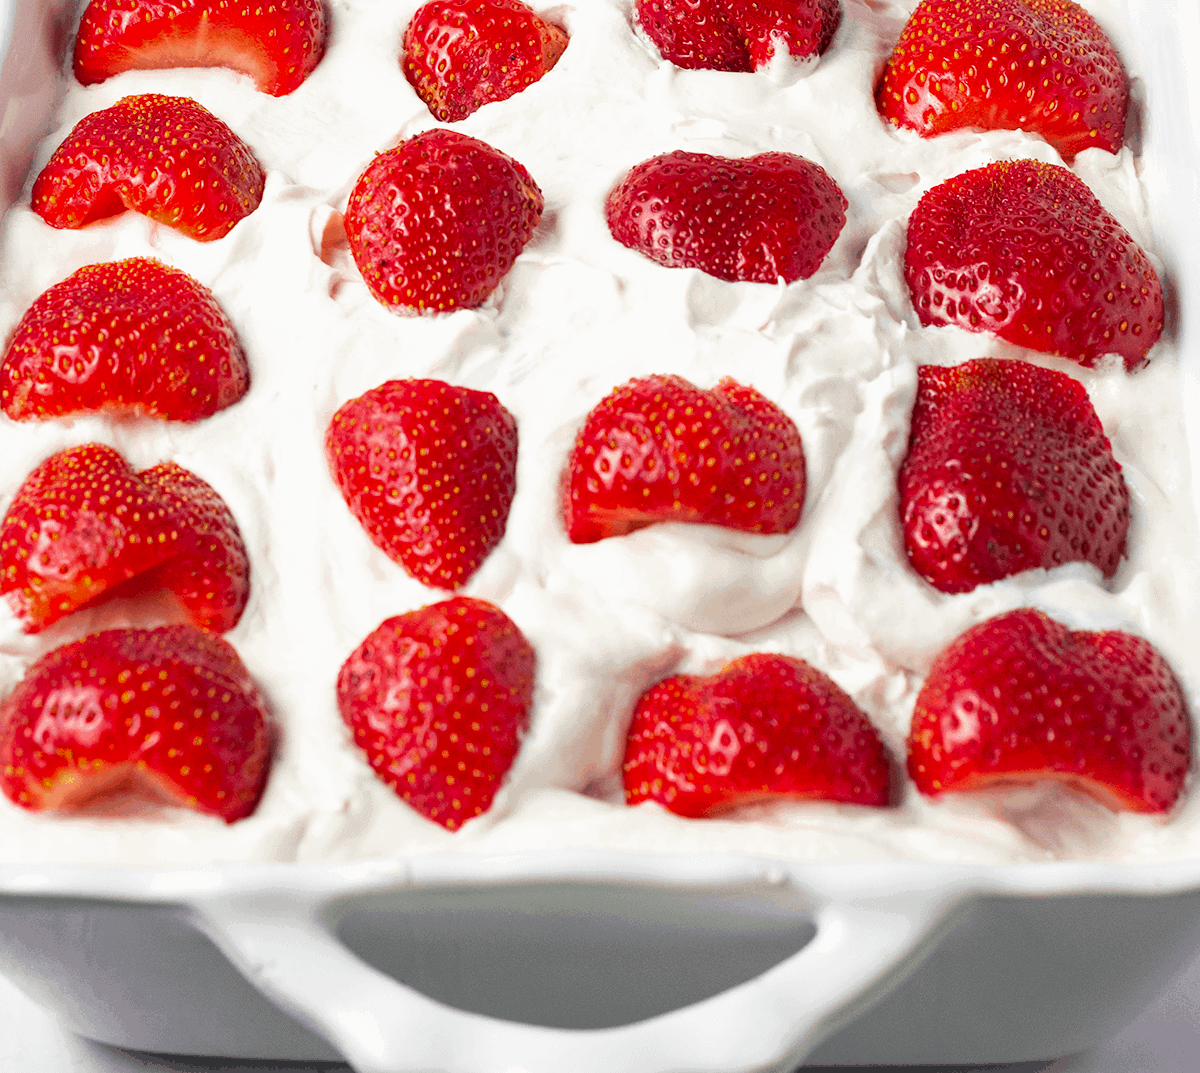 Easy gluten-free vegan strawberry ice box cake no bake